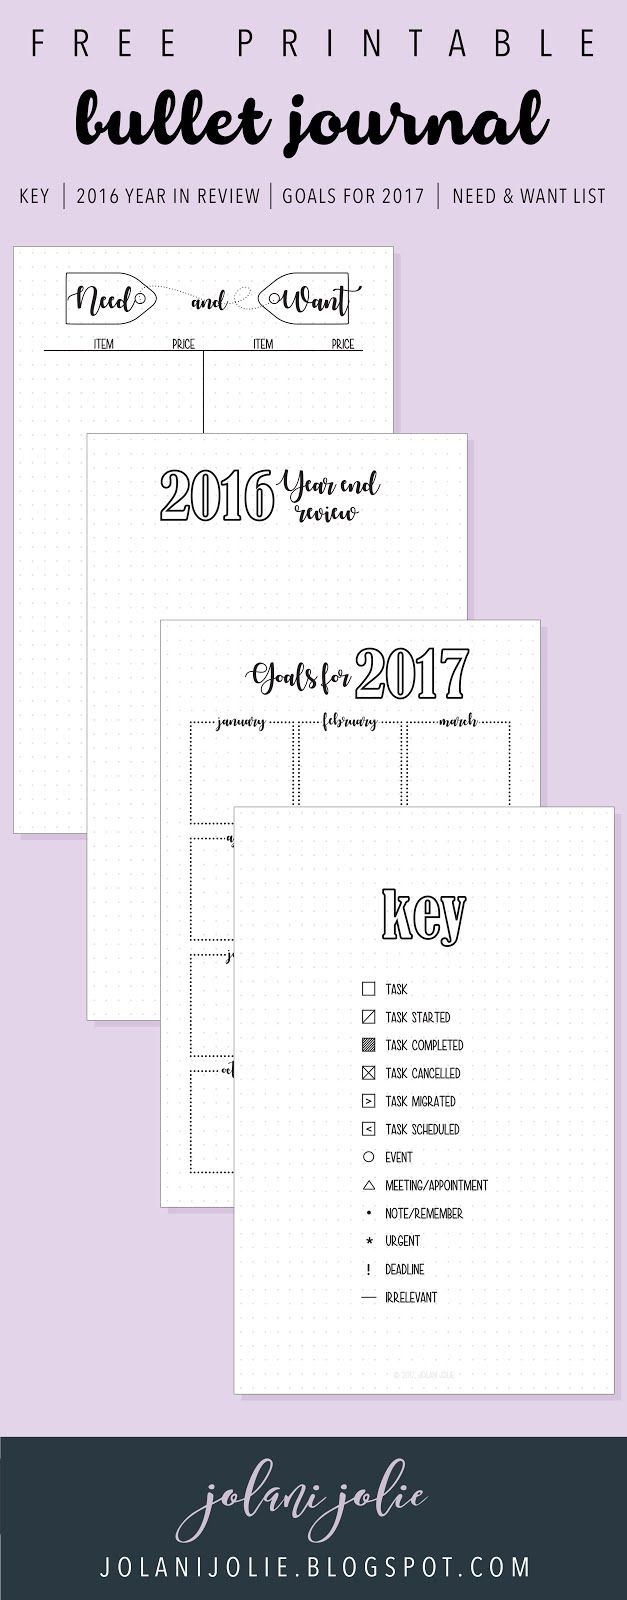 graphic regarding Bullet Journal Key Printable known as Absolutely free Bullet Magazine Printables: Primary, 2016 Yr in just Examine